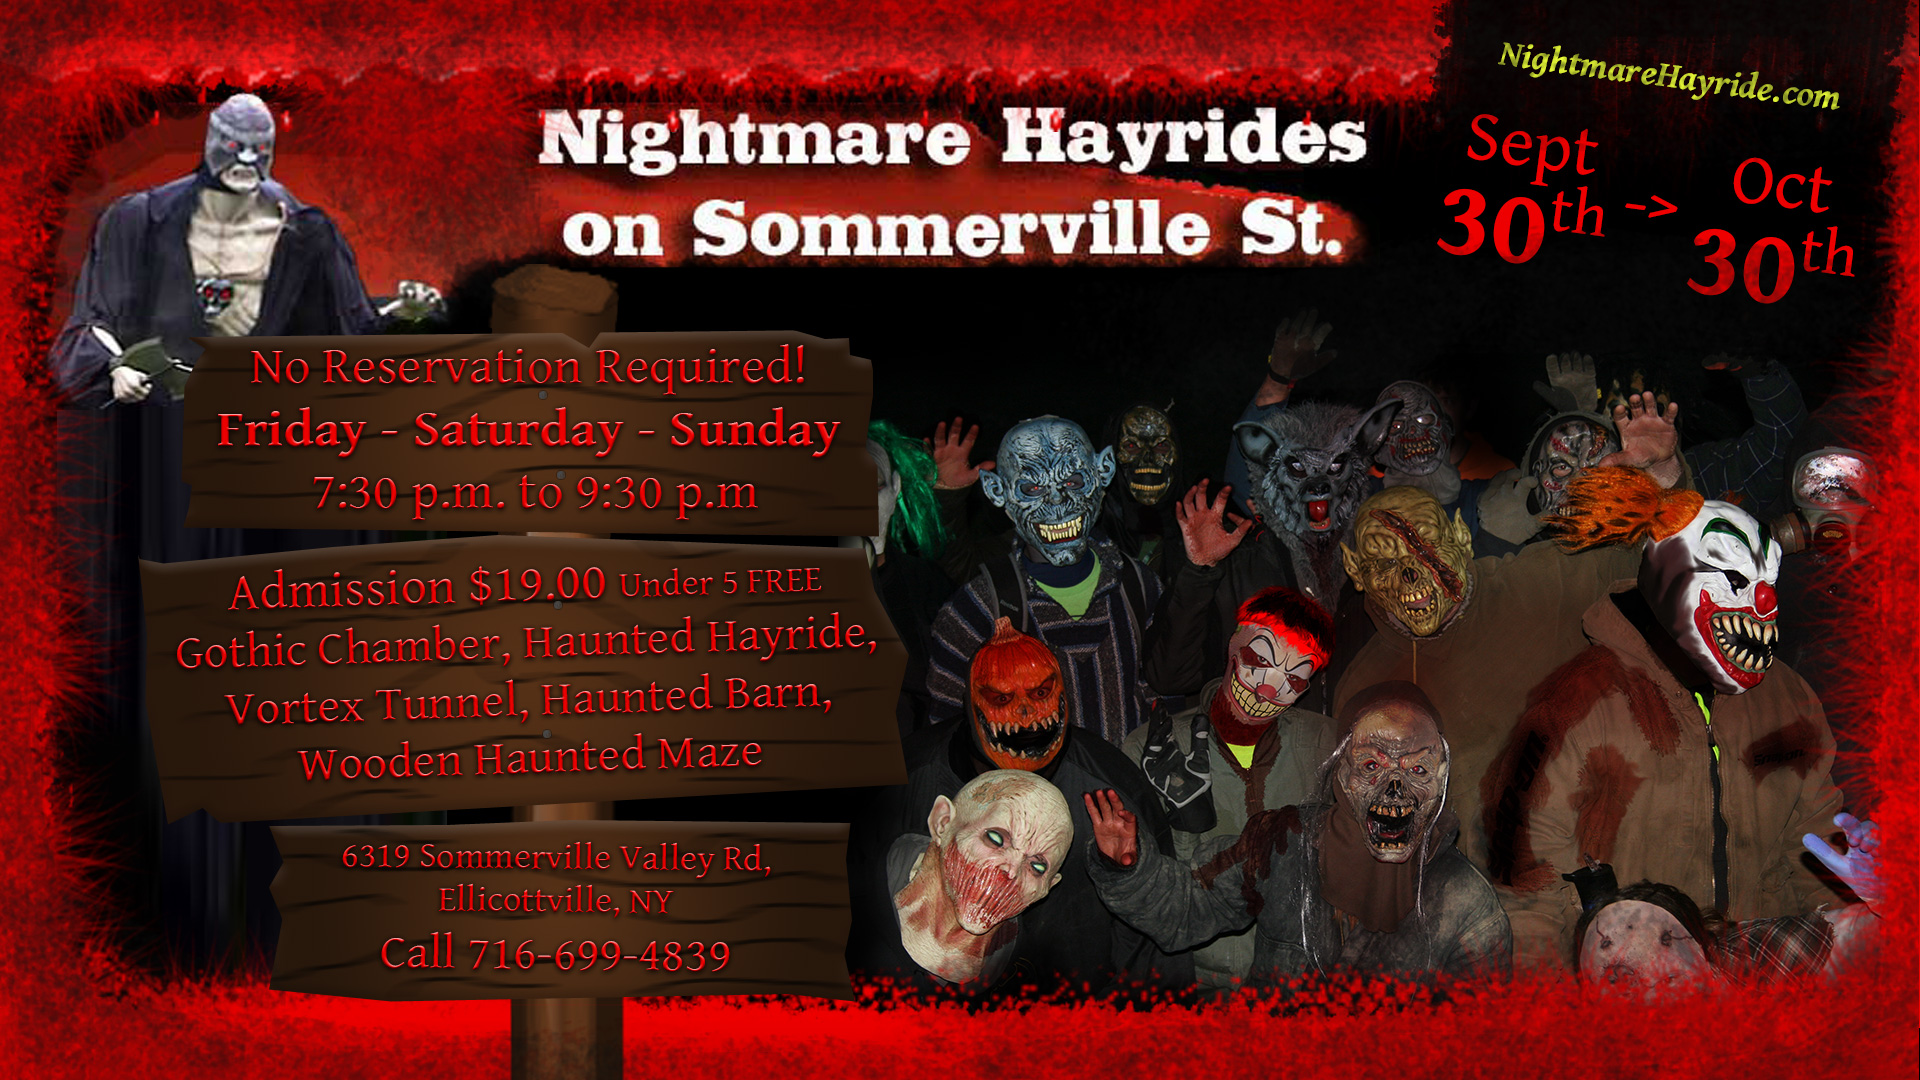 Watch out on the Nightmare Hayride